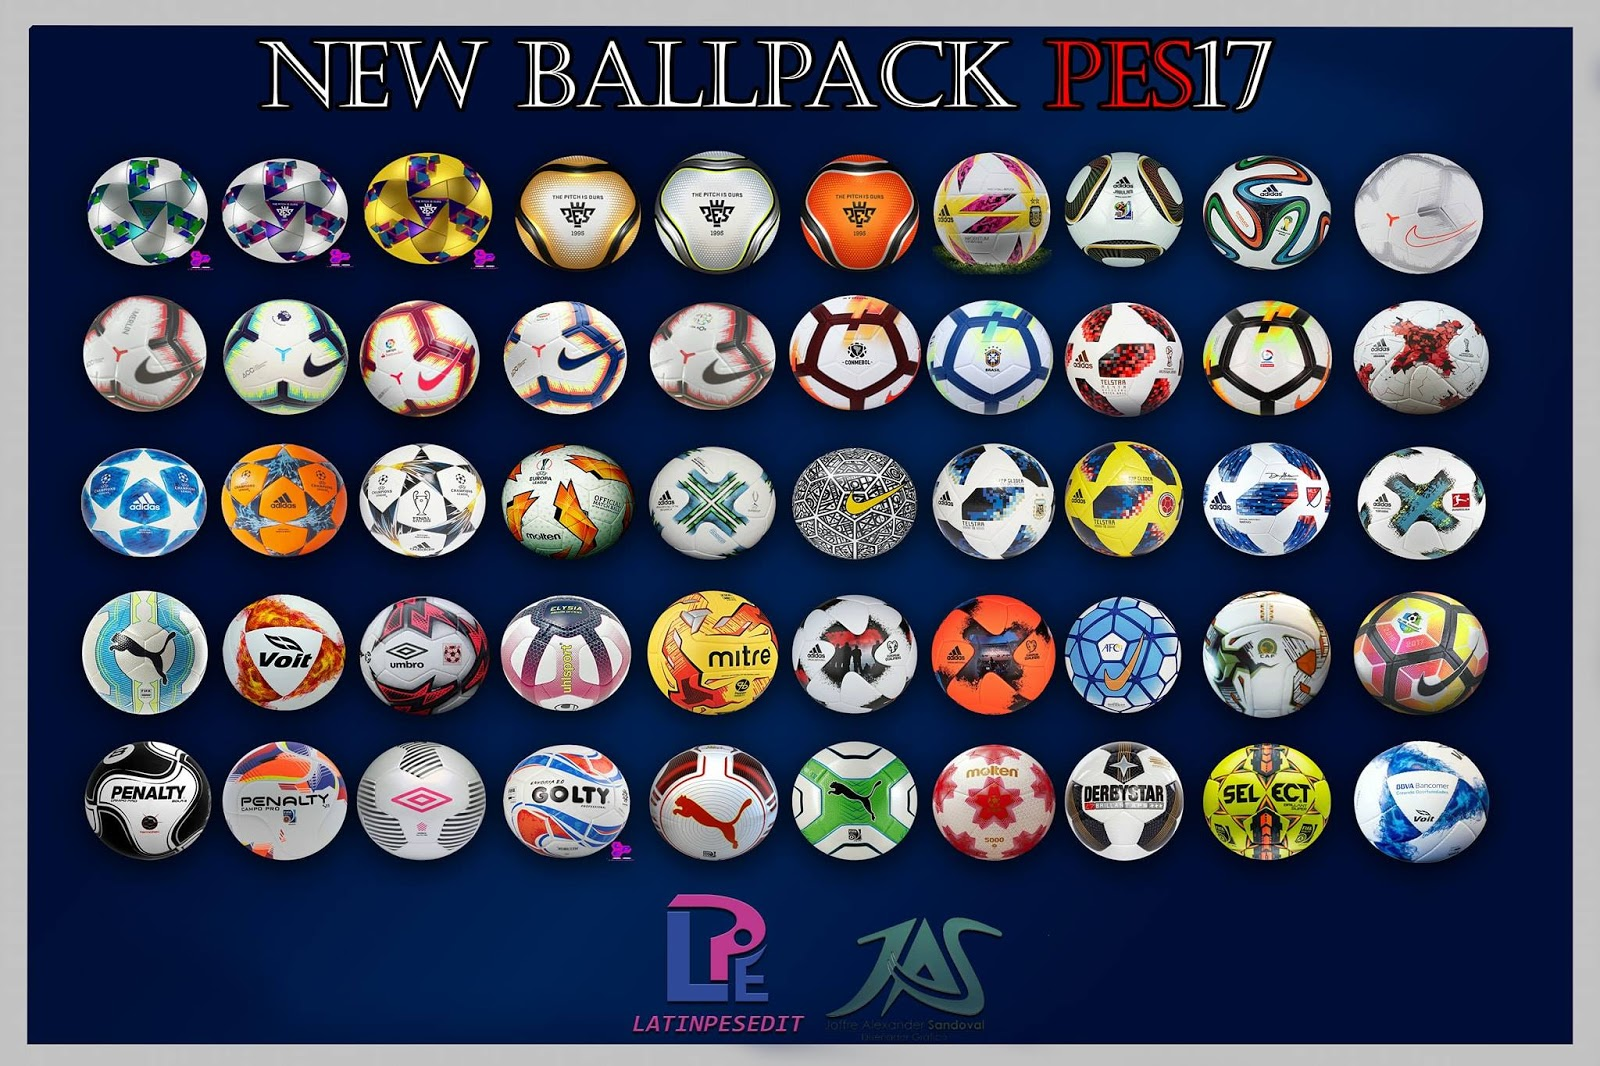 2017 Ballpack Latinpesedit